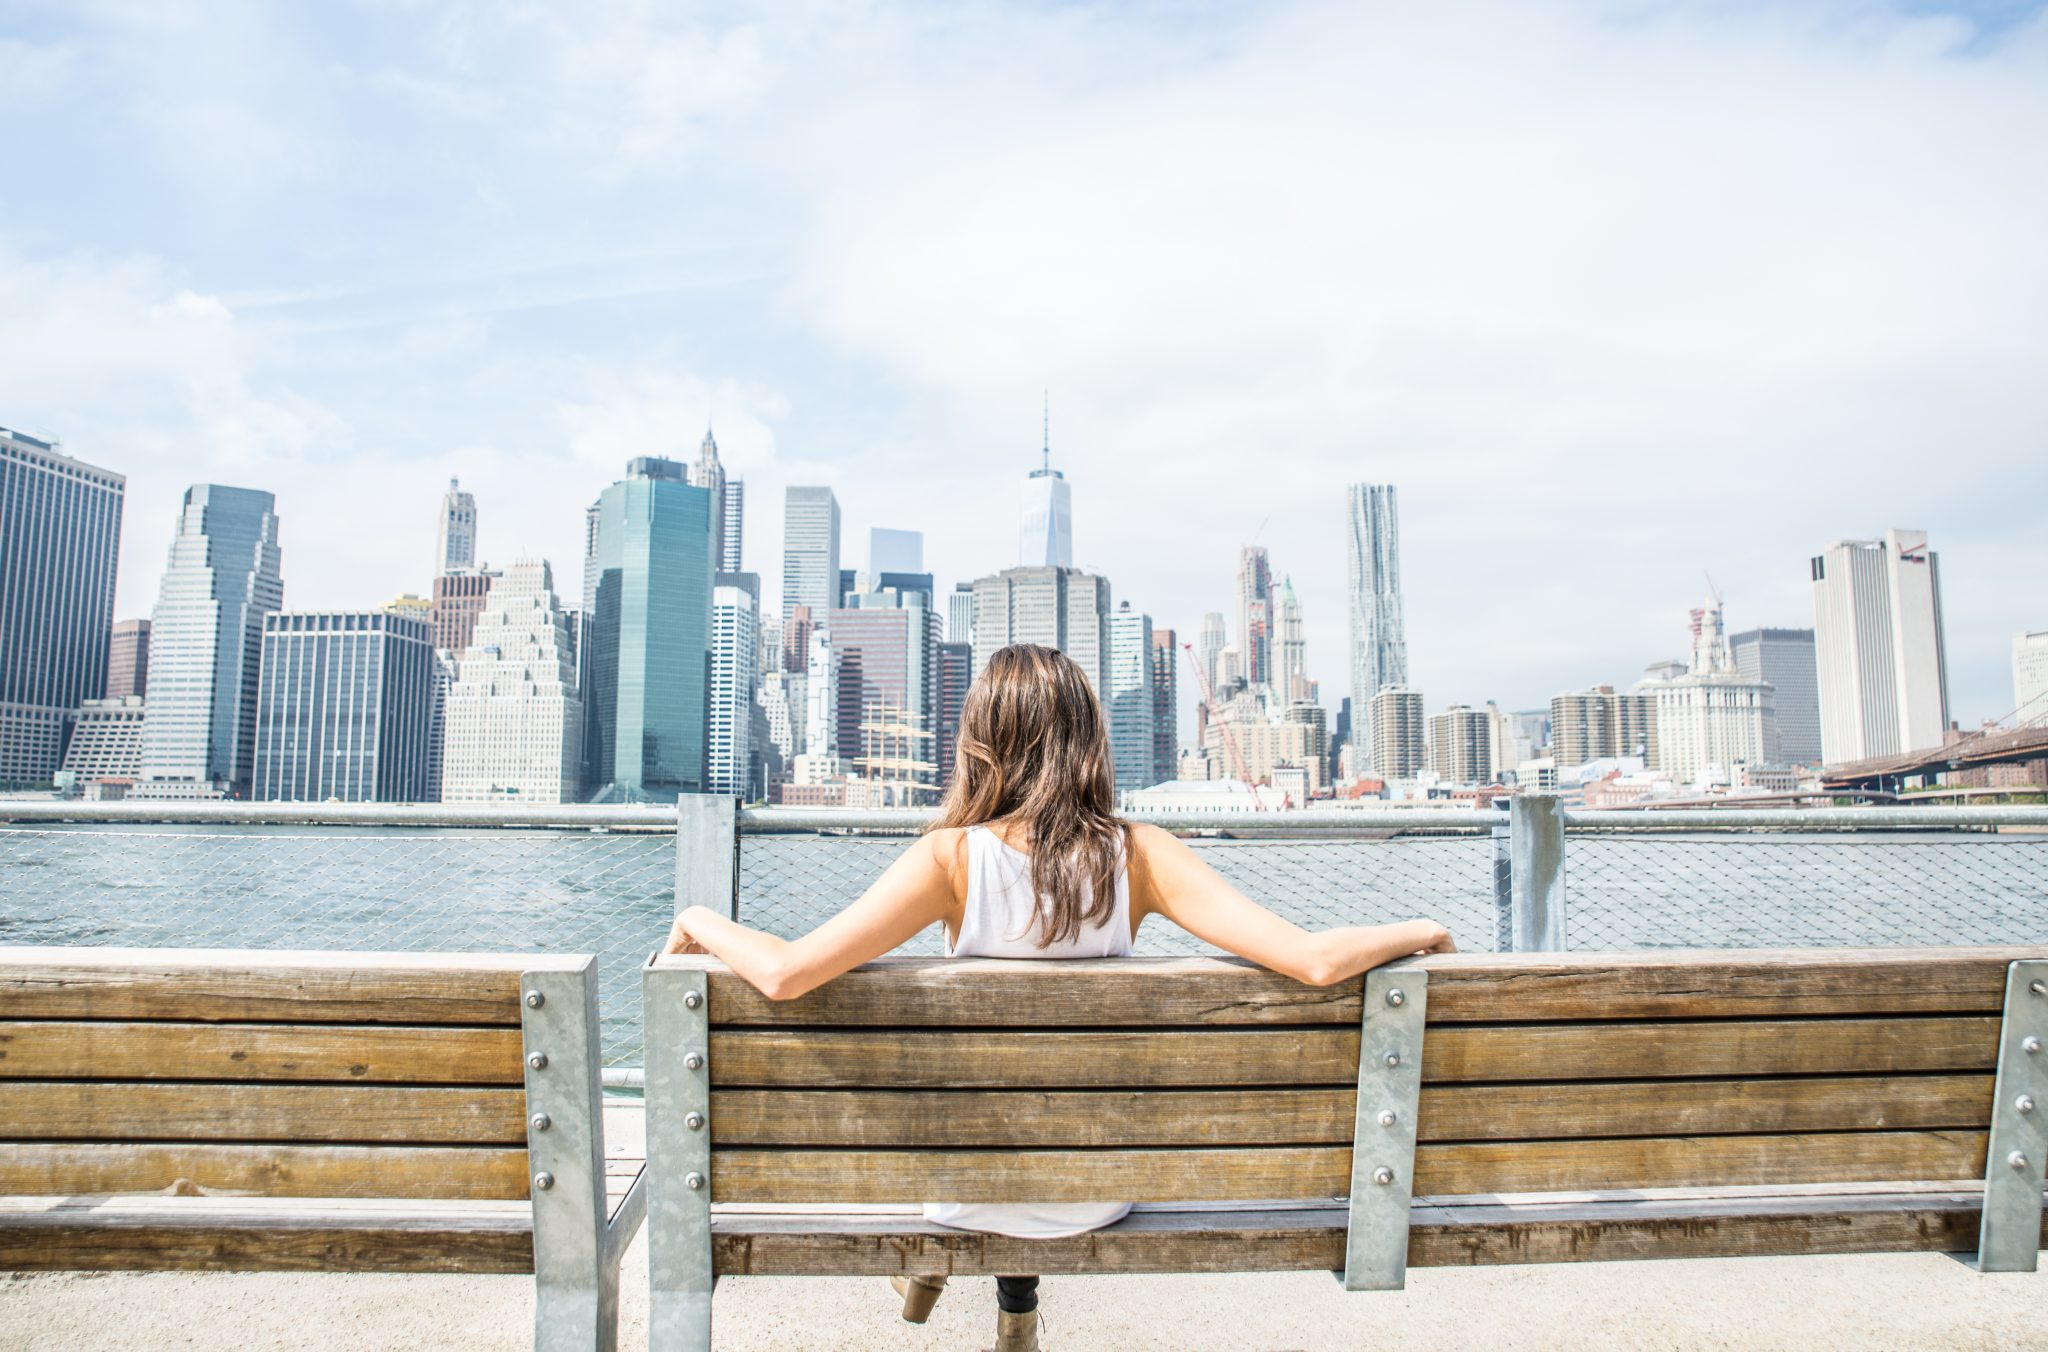 This woman knows how to enjoy being single, sitting confidently on a wooden bench with her back to the camera. She's looking out across a river at a busy city skyline.